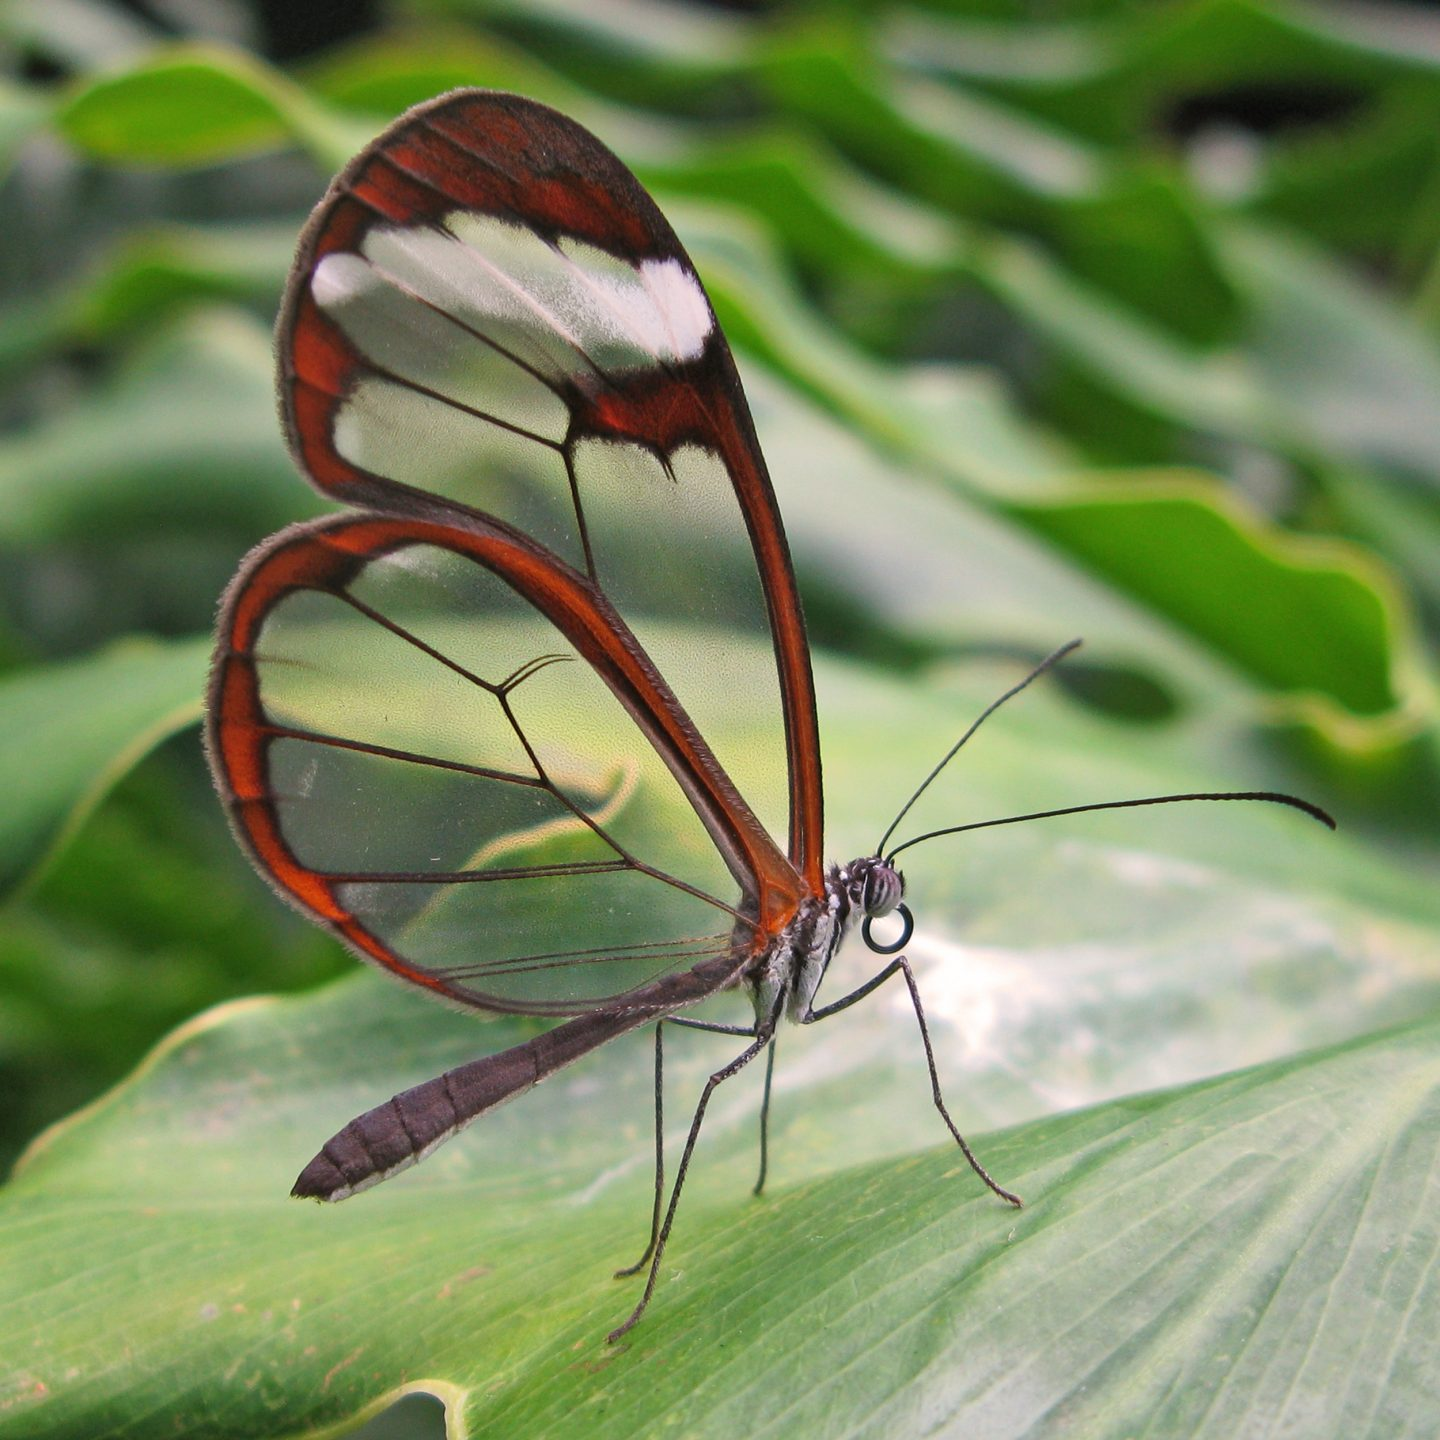 the glass-winged butterfly.